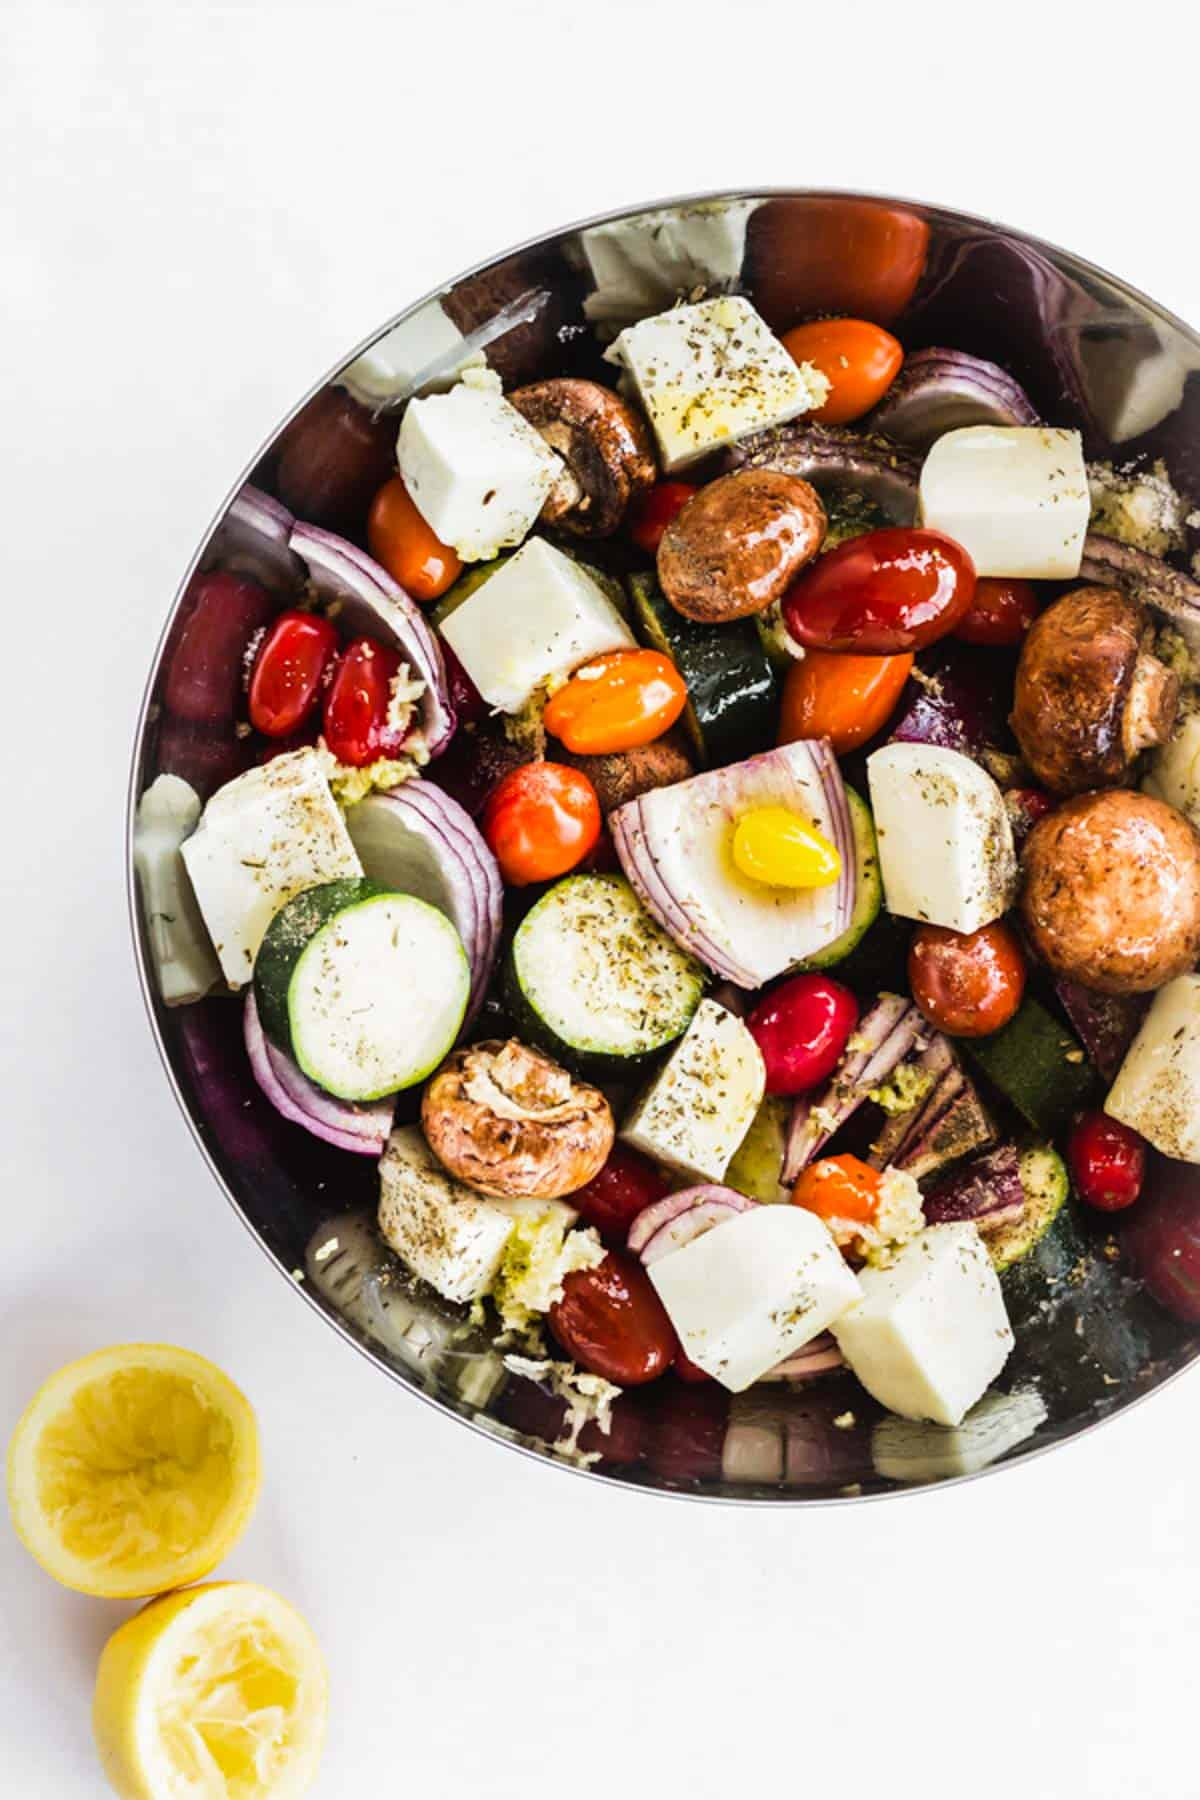 A large bowl of veggies and Halloumi cheese marinating in olive oil, lemon, and herbs.